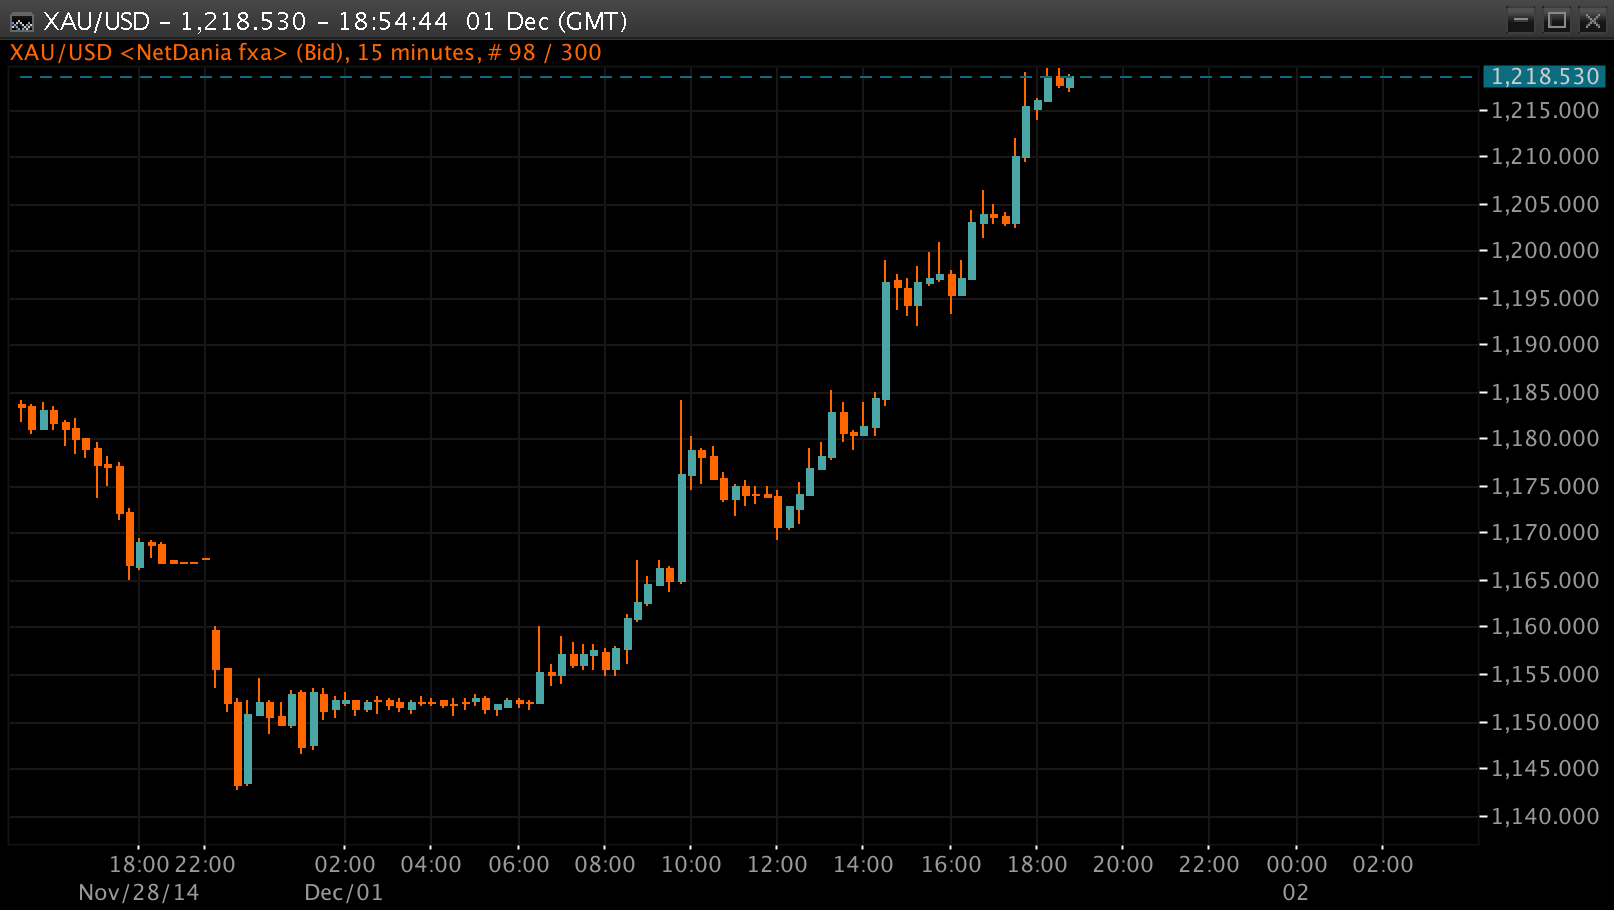 Gold Chart This Monday, 15 min intervals, Source: NetDania